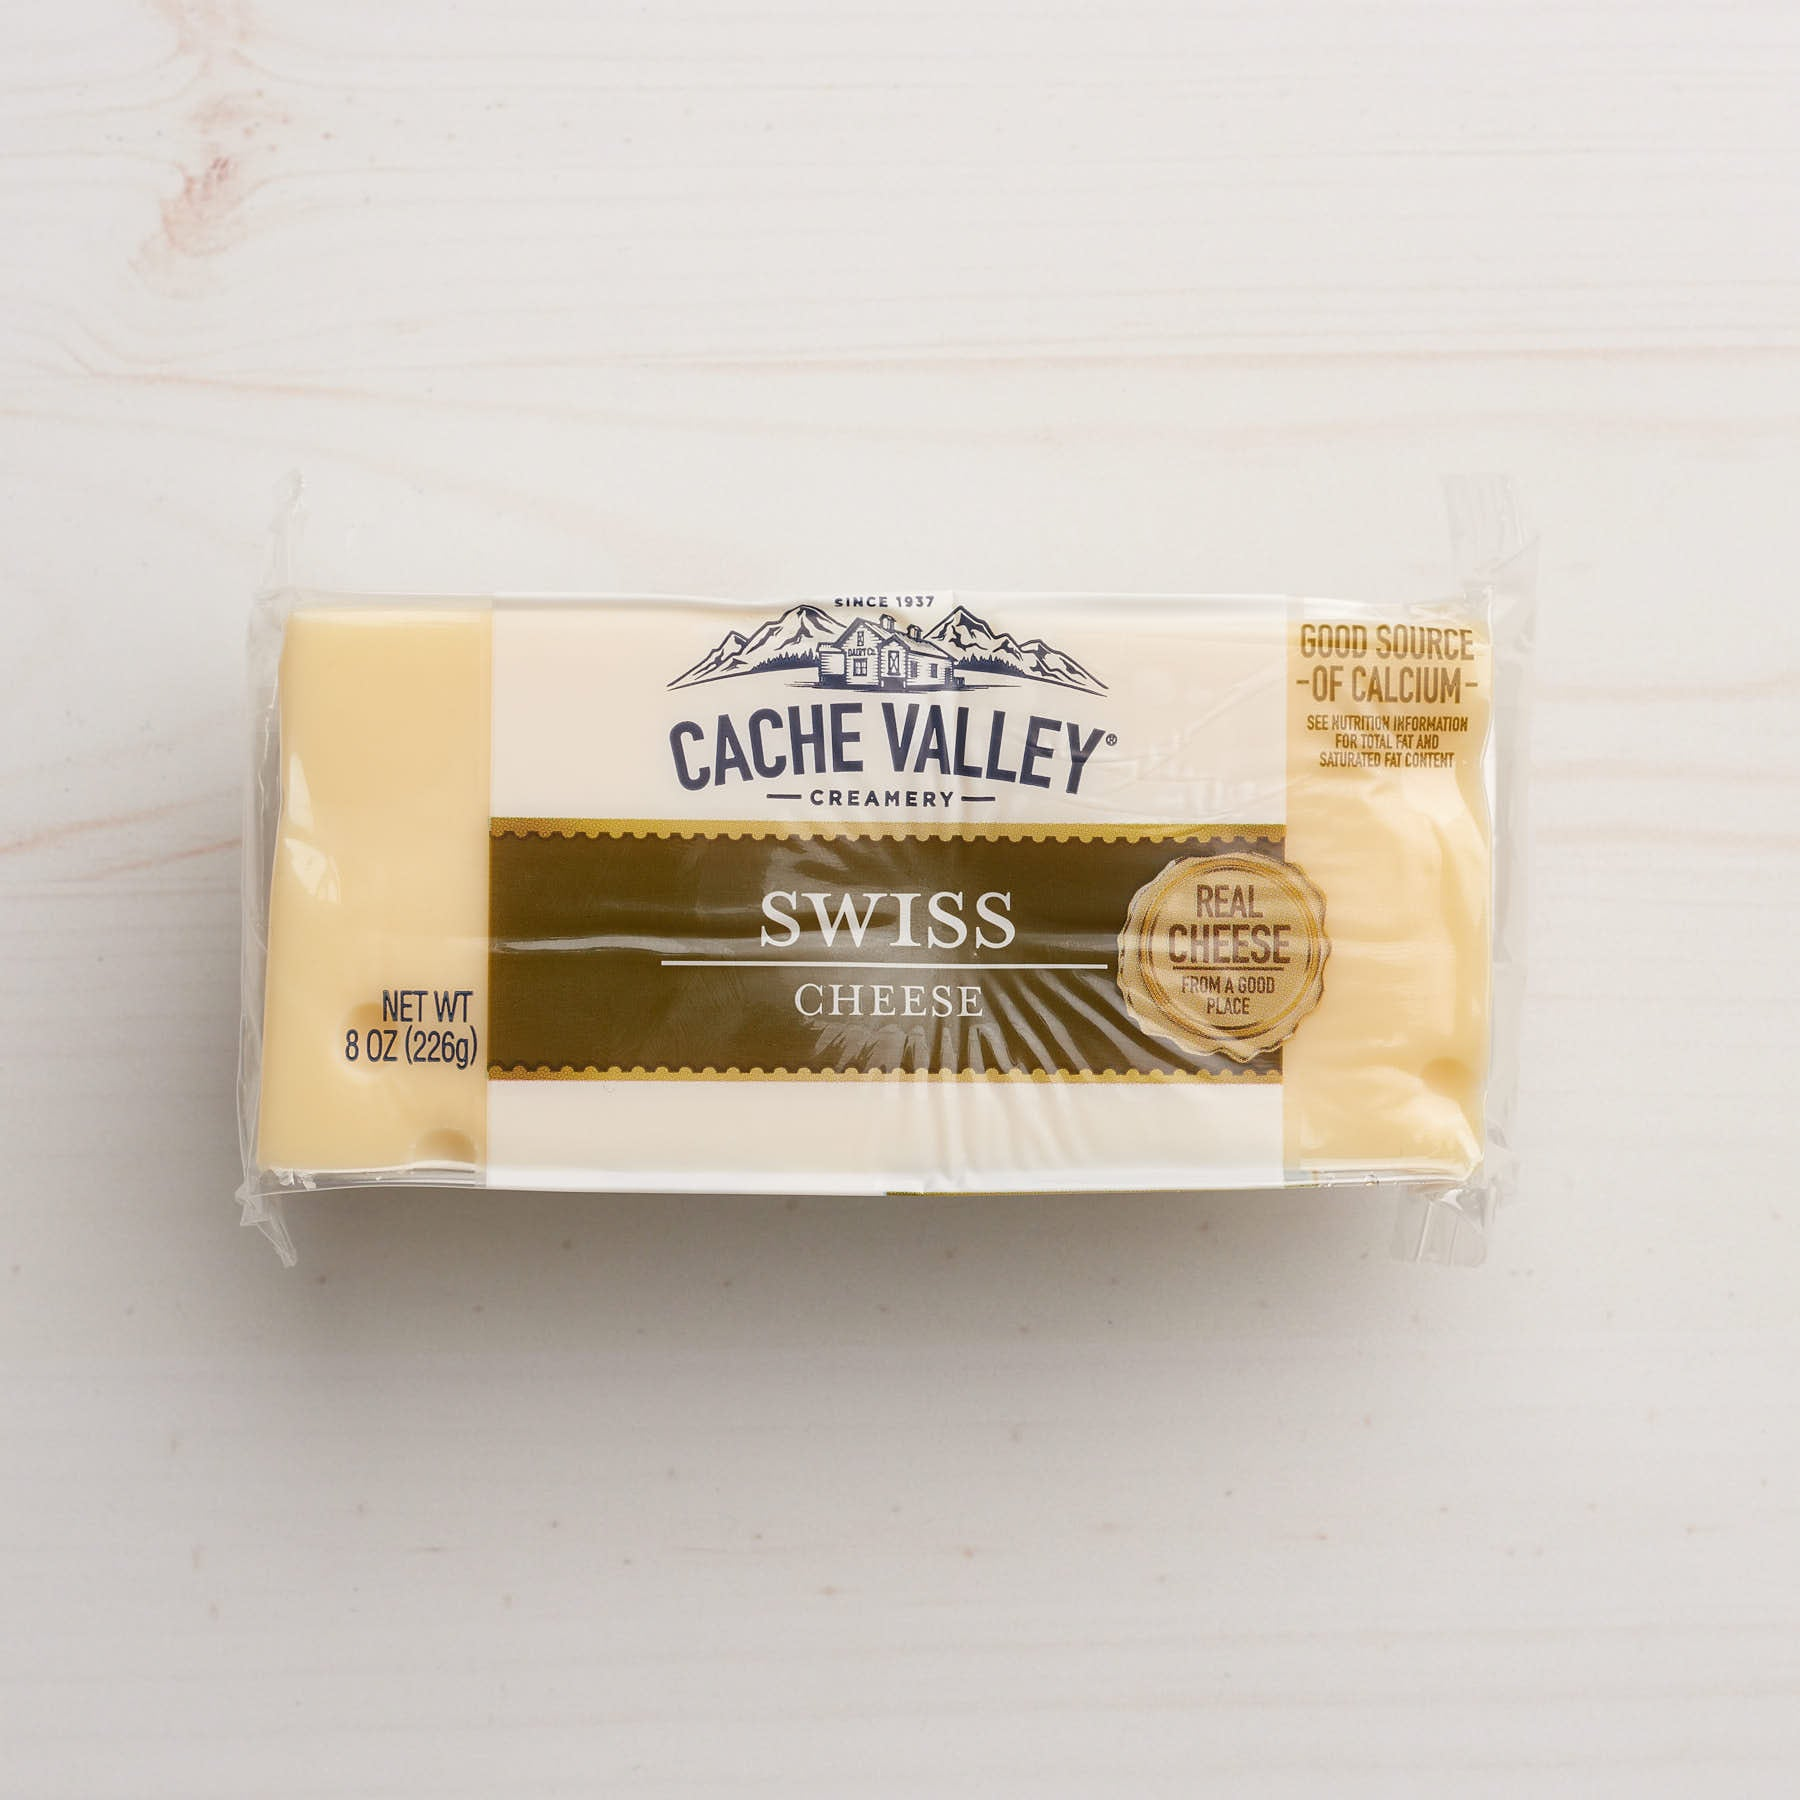 Image of Cache Valley Creamery Swiss Cheese